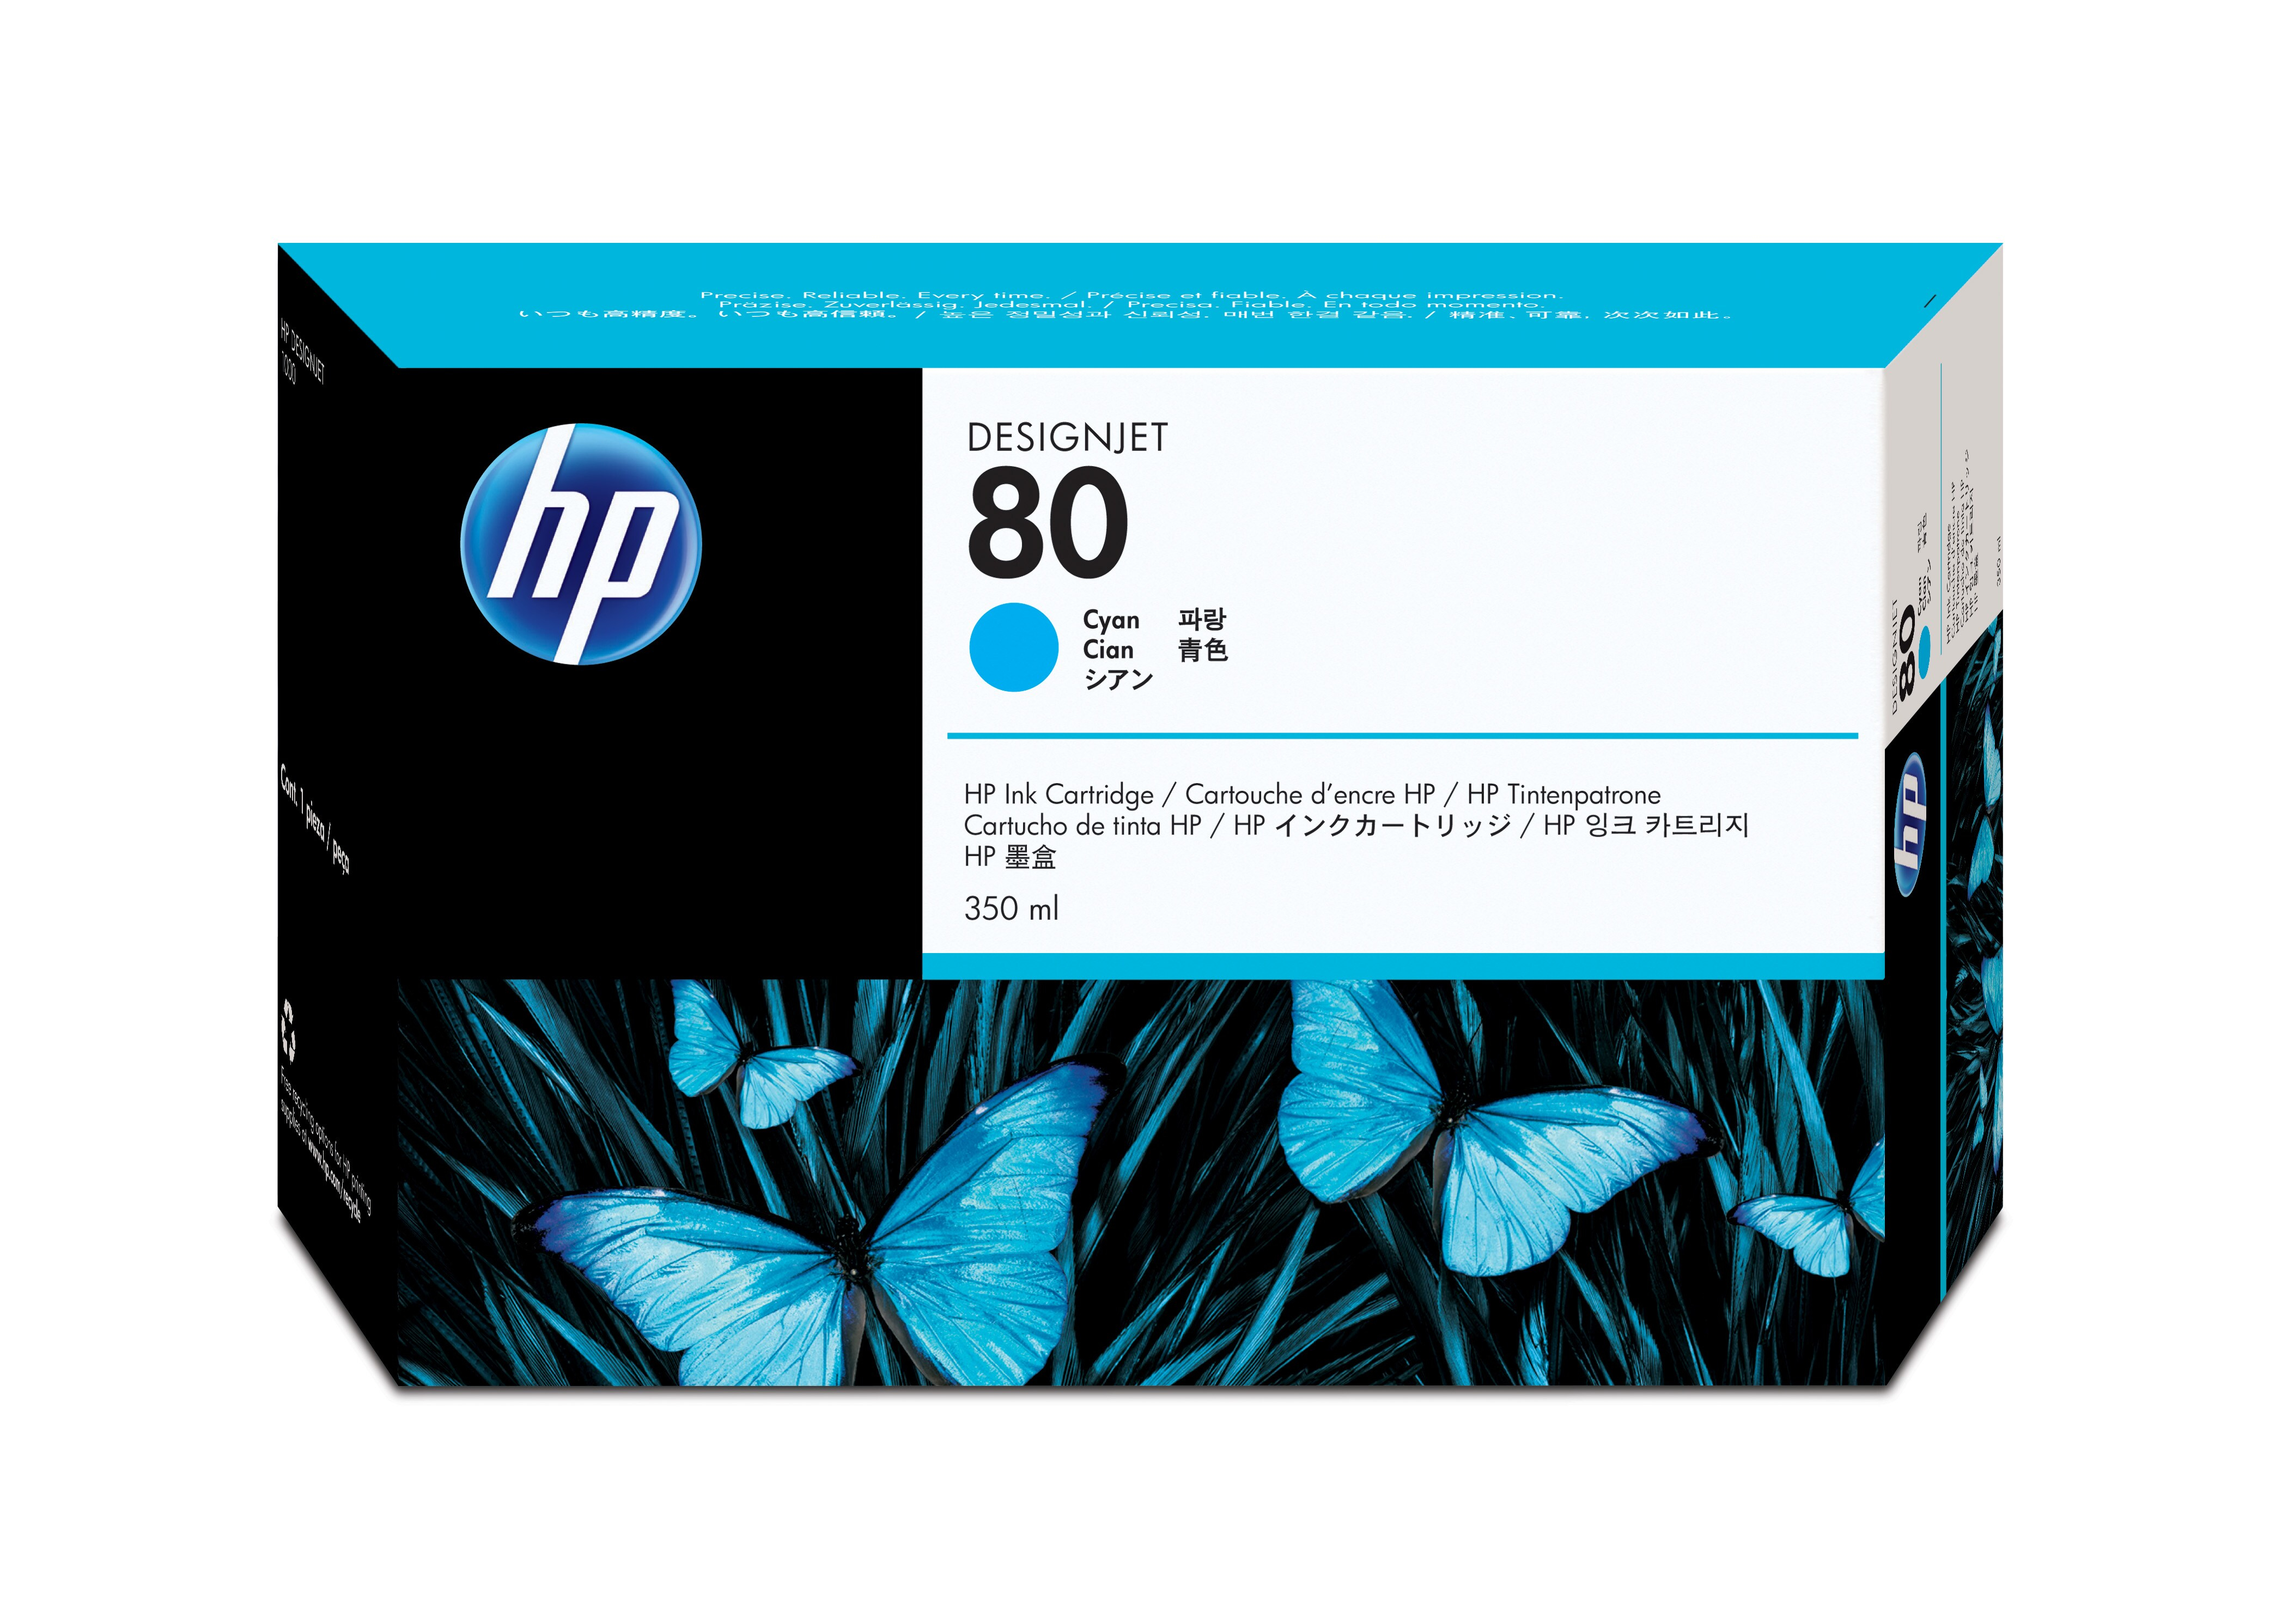 Hpc4846a       Hp 80 Cyan Inkjet              Hp No.80 Cyan Ink Cart (350ml)for Designjet 1050c/1055cm     - UF01